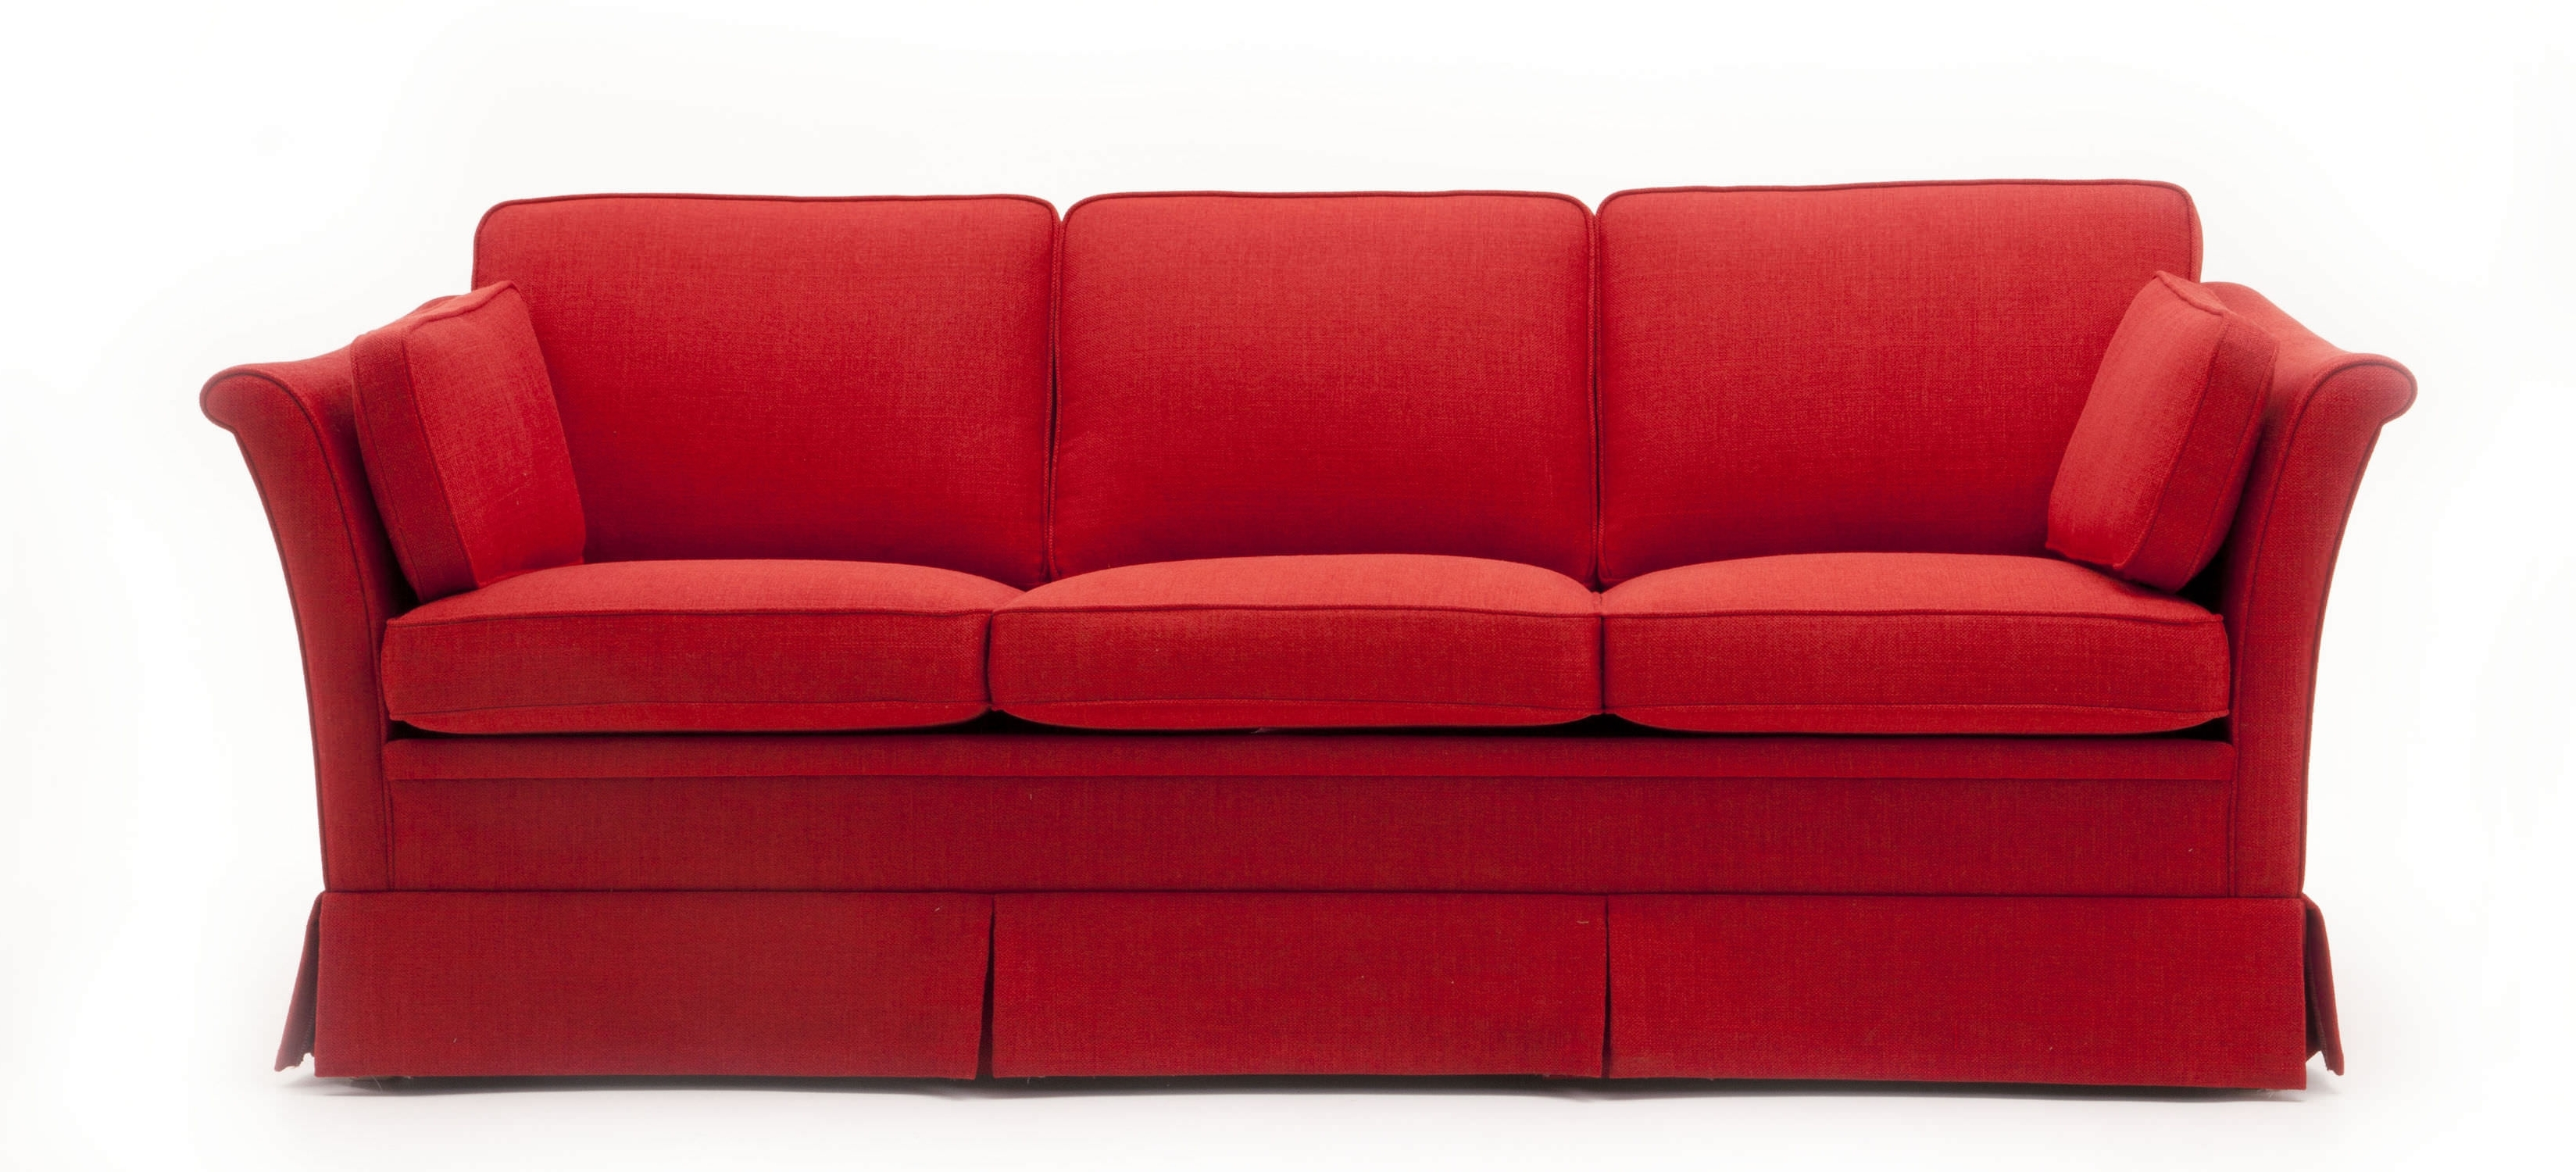 Sofas With Removable Covers Throughout Most Popular Traditional Sofa / Fabric / 3 Seater / With Removable Cover (View 11 of 20)